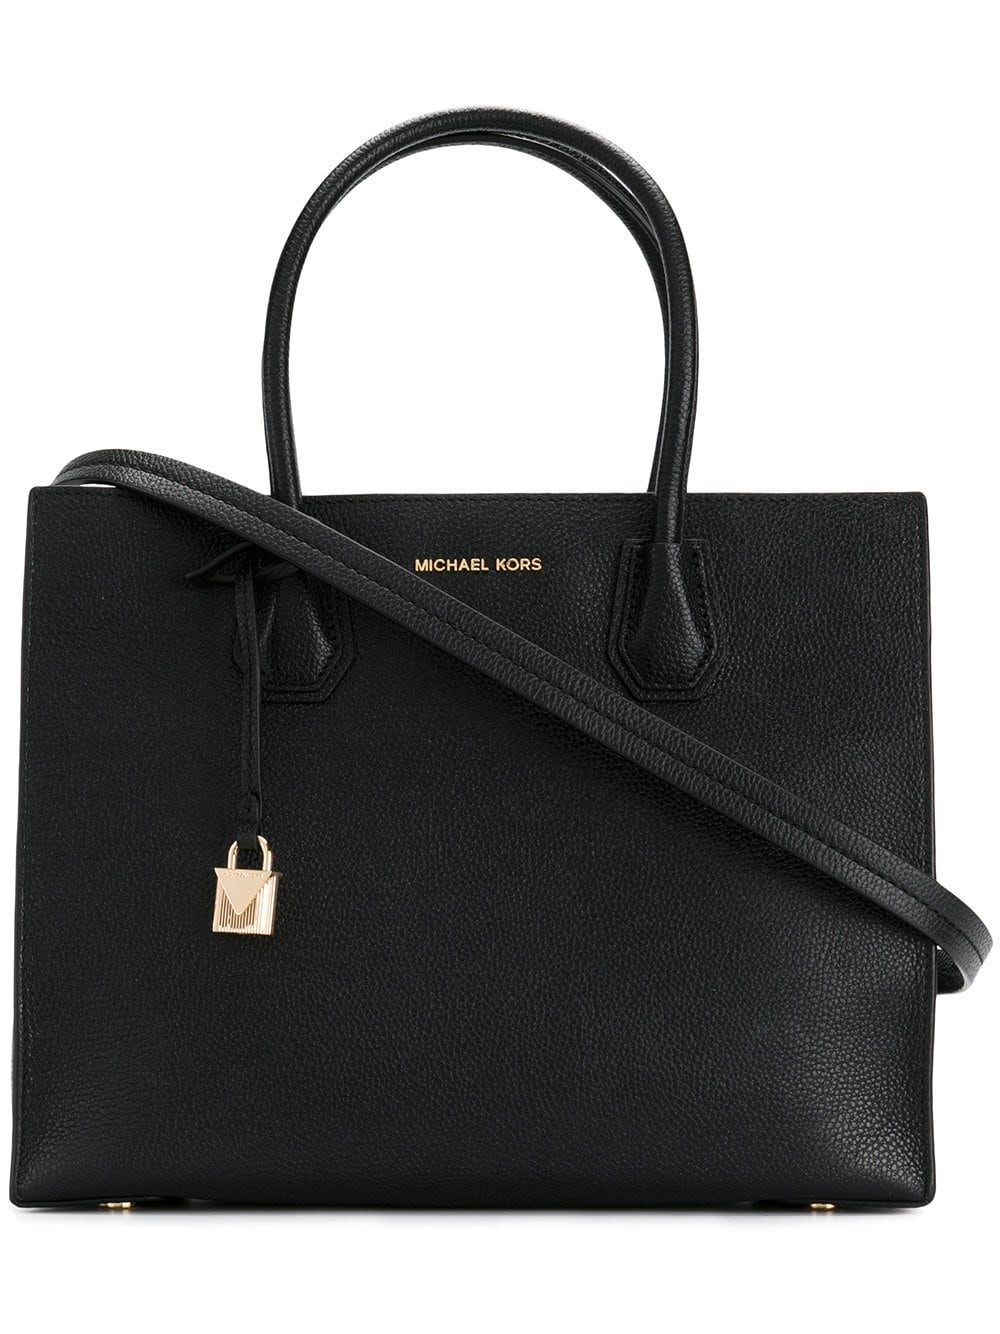 ec7be16e17ce michael kors mk LOGO TOTE BAG WITH STRAP available on montiboutique ...